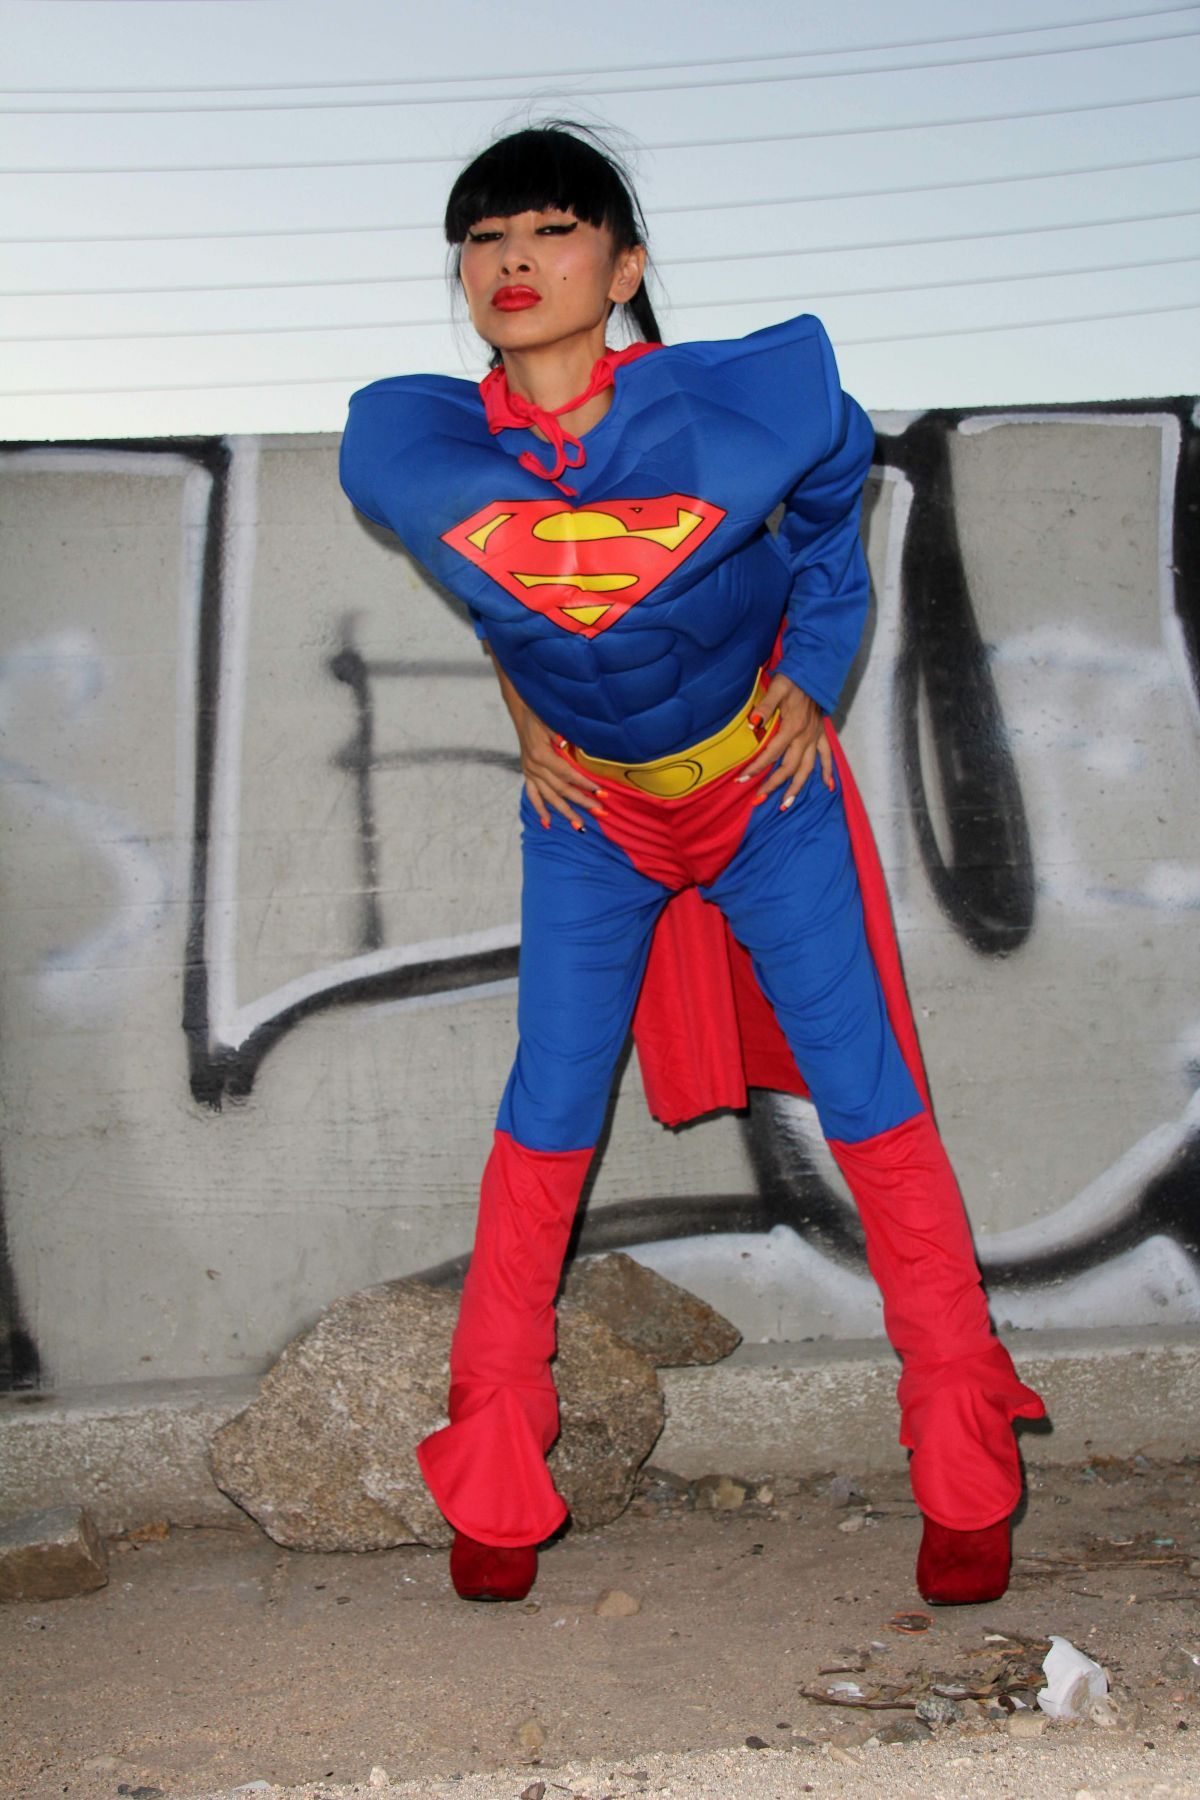 Bai Ling Posing In A Superman Costume For Halloween  sc 1 st  Celebzz & Bai Ling Posing In A Superman Costume For Halloween - Celebzz